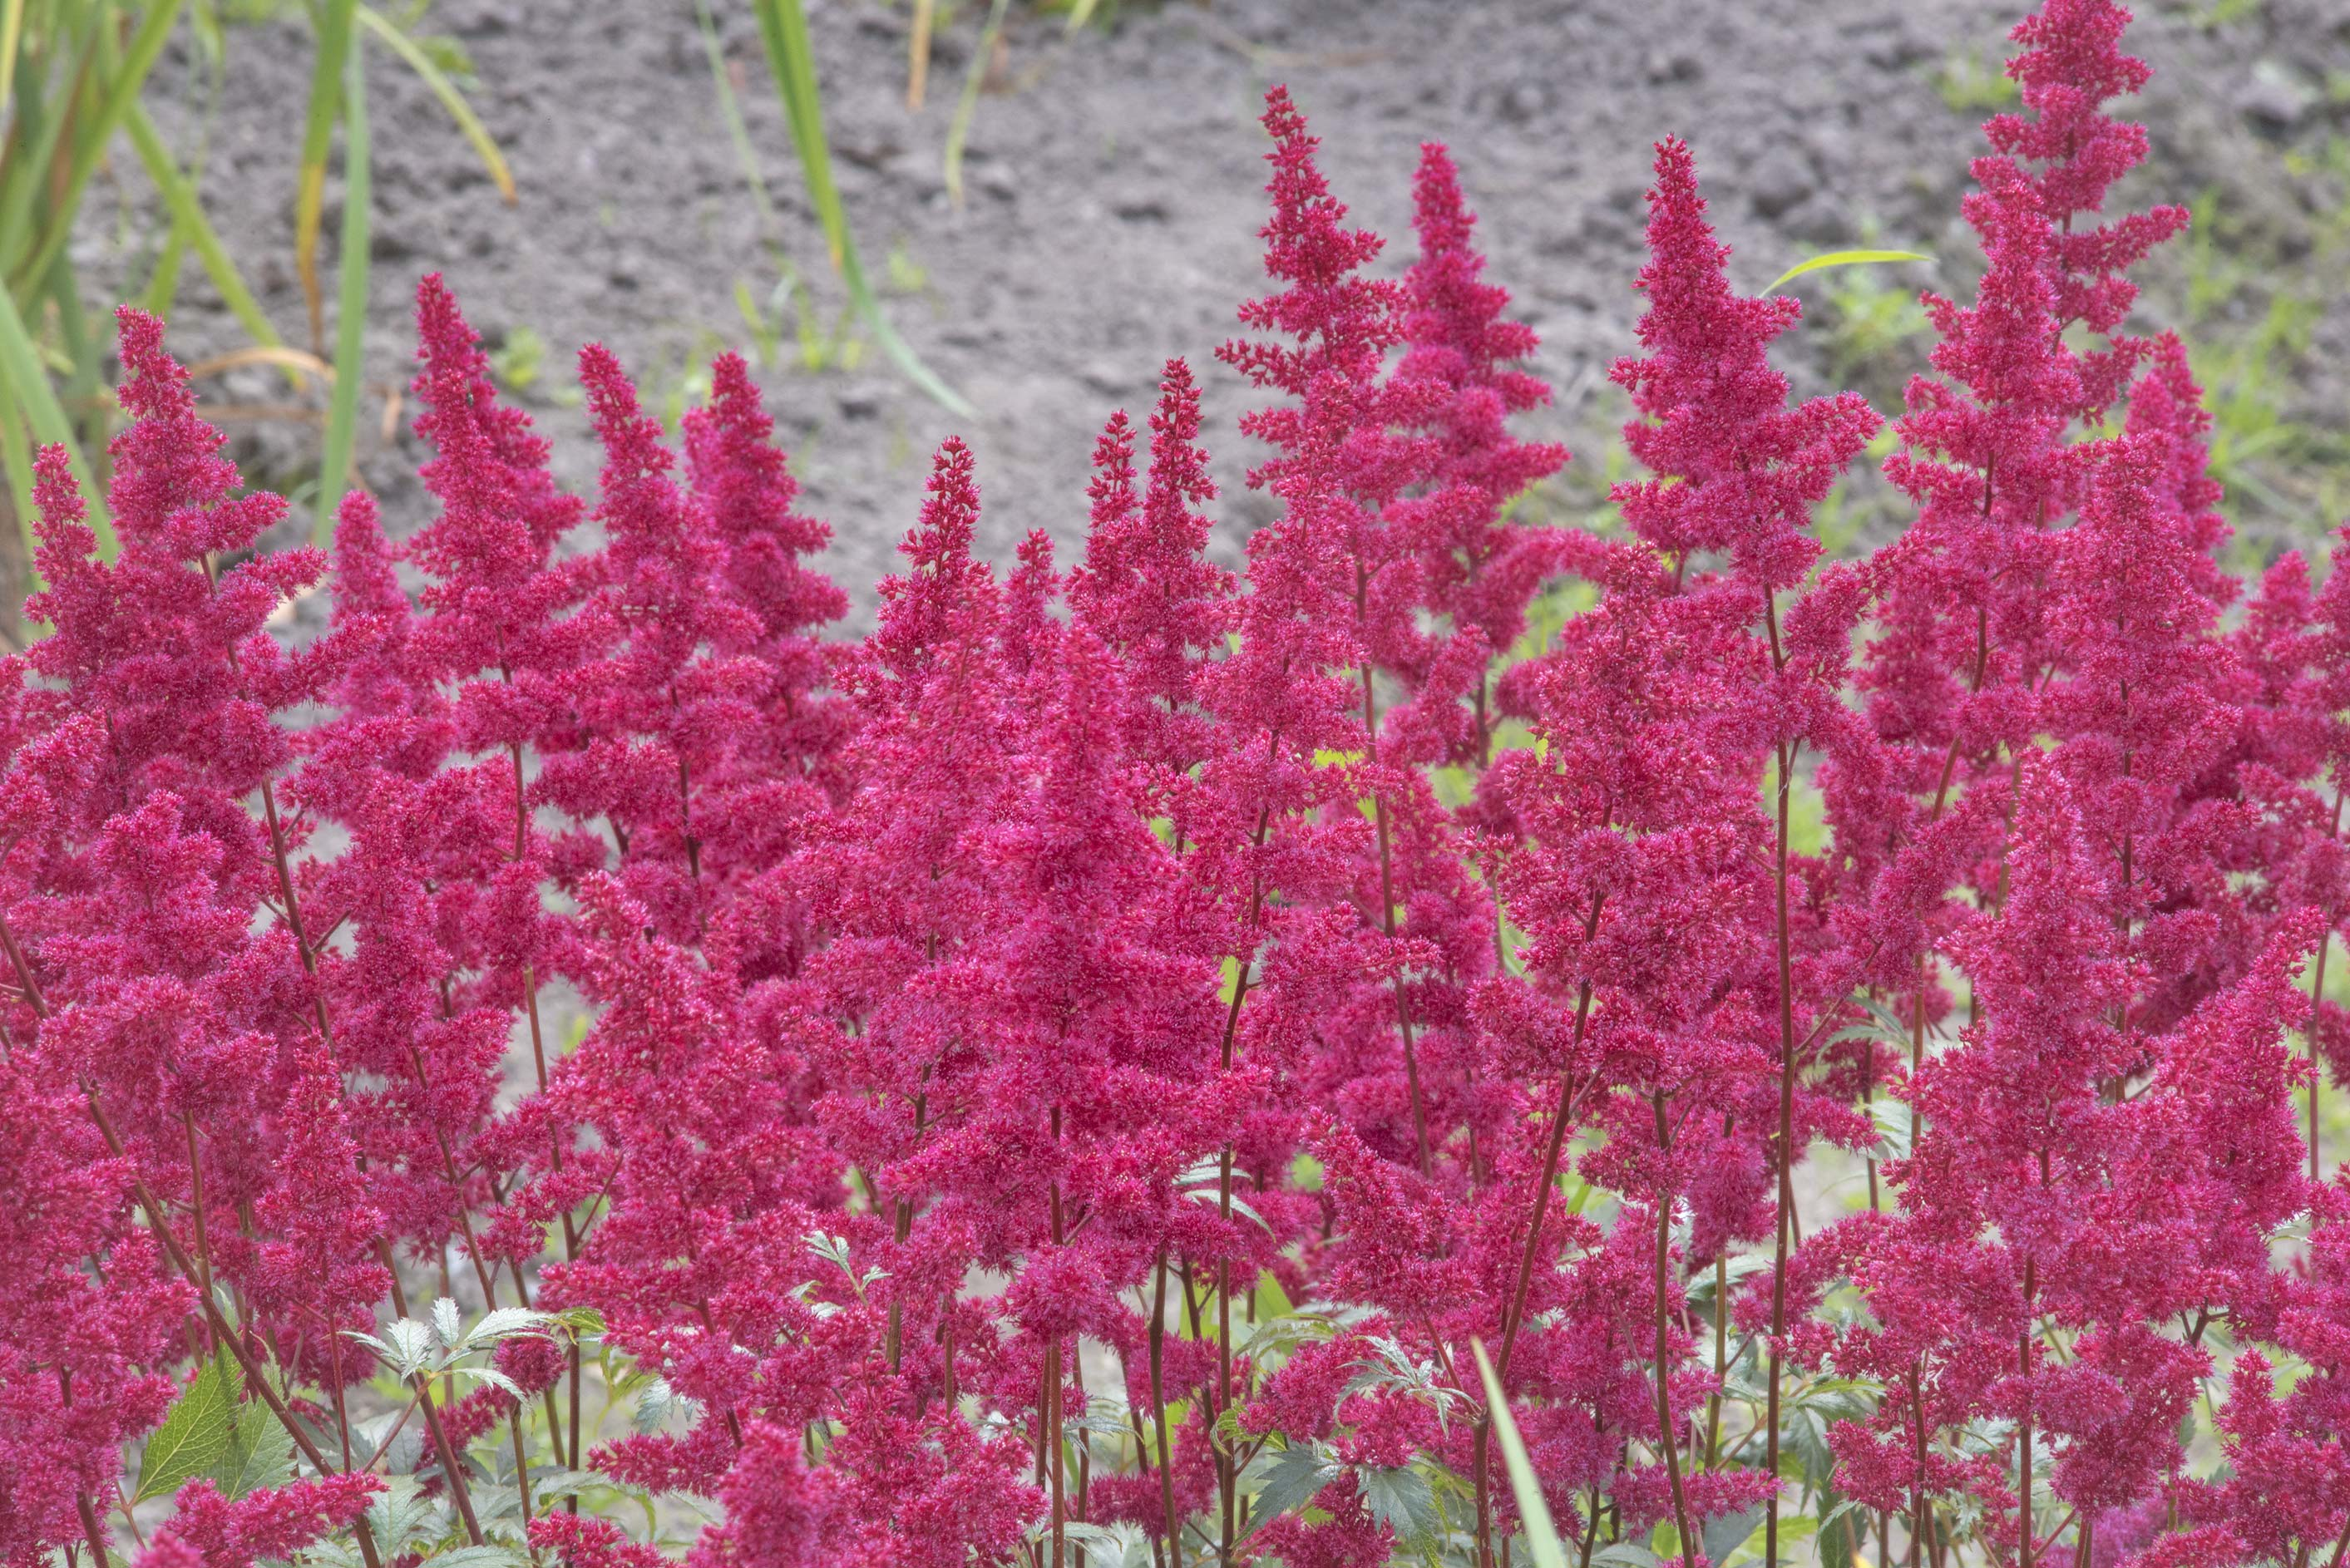 Red flowers of false spirea (Astilbe japonica) in...Institute. St.Petersburg, Russia